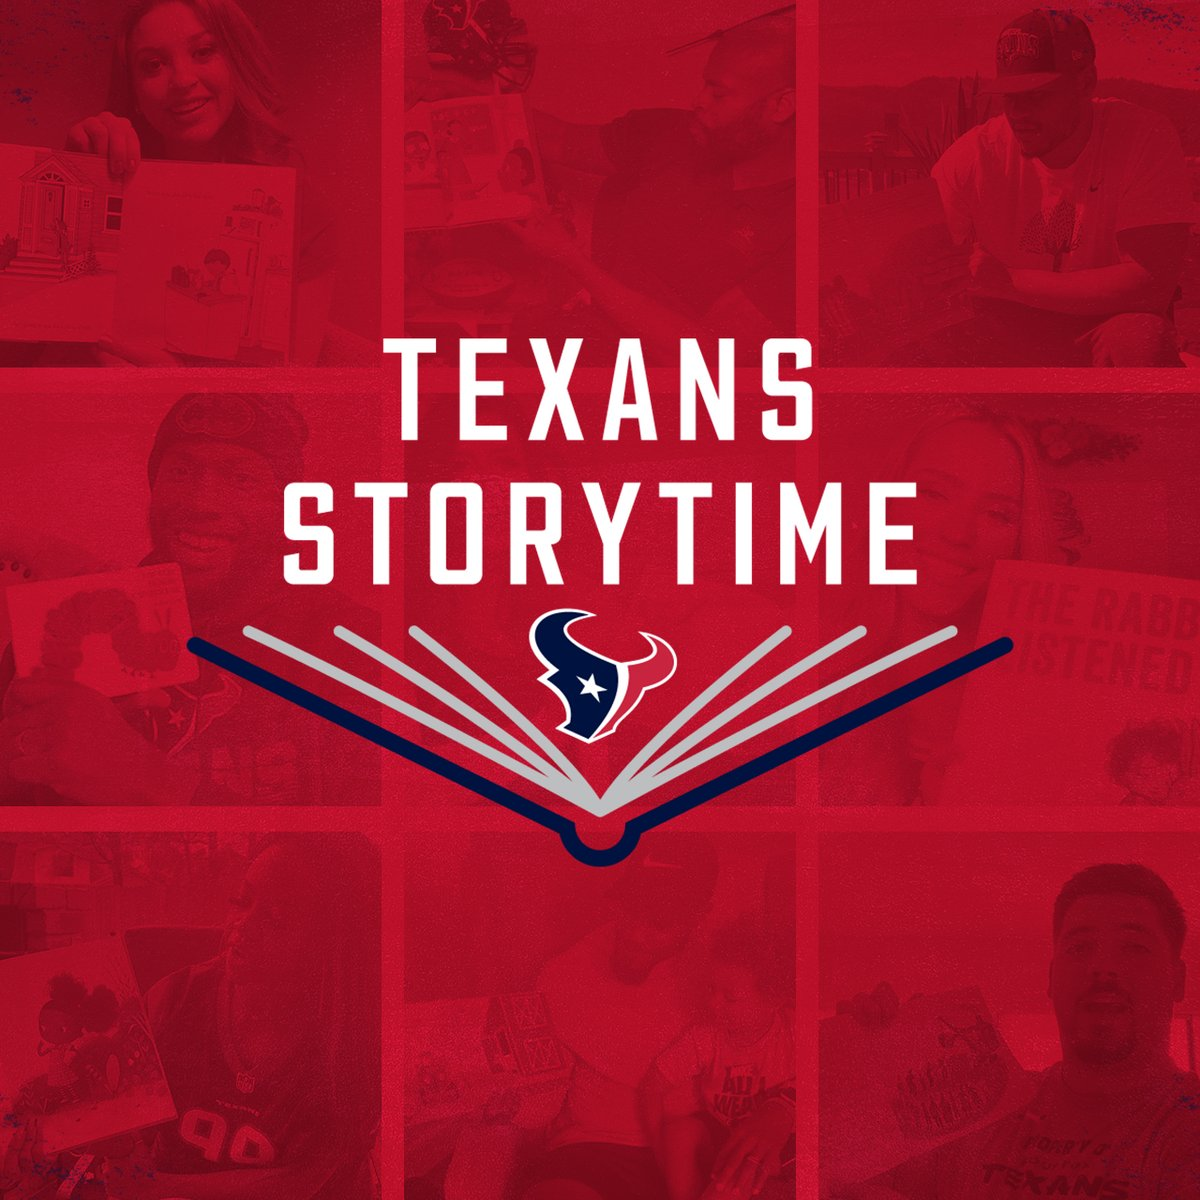 #Texans players, @TexansCheer, and Ambassadors read their favorite childrens books. 📚 » tex.nz/storytime